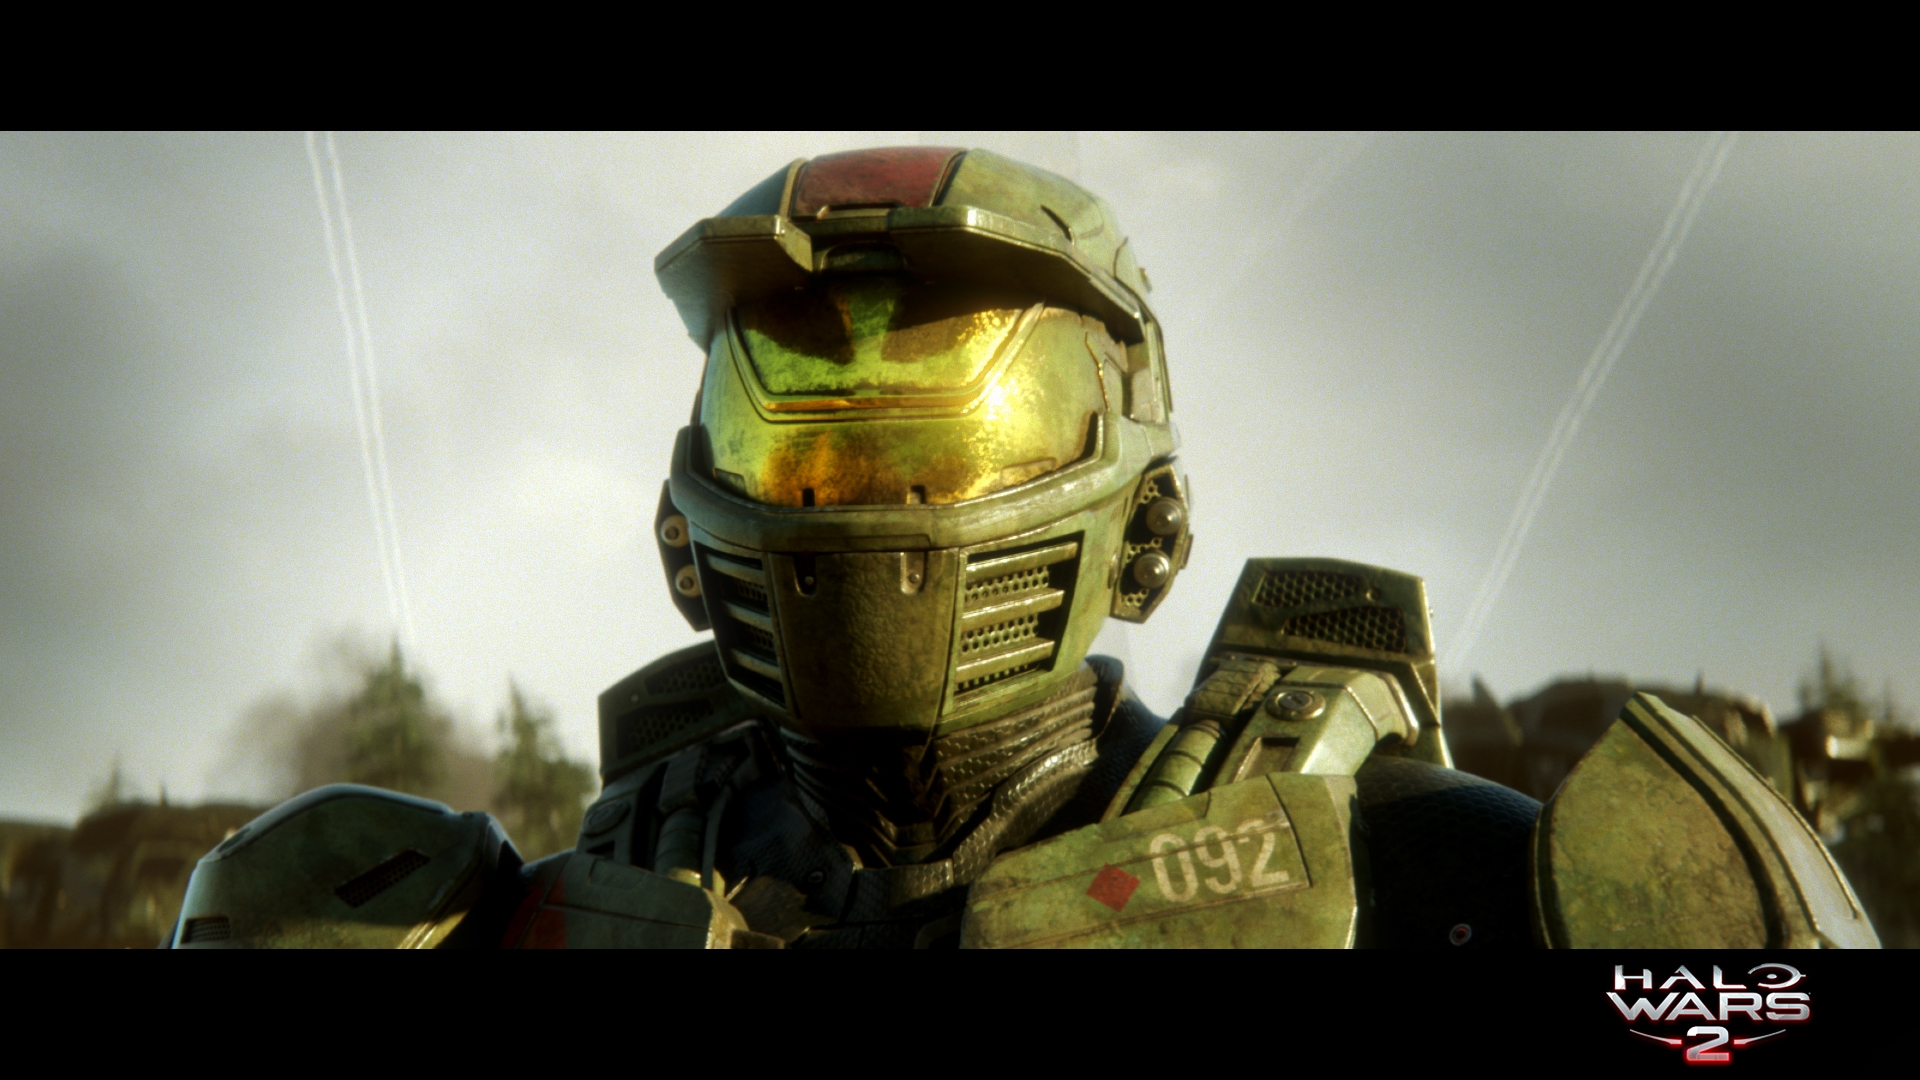 Halo Wars 2 (XO) - you're the chief of this army